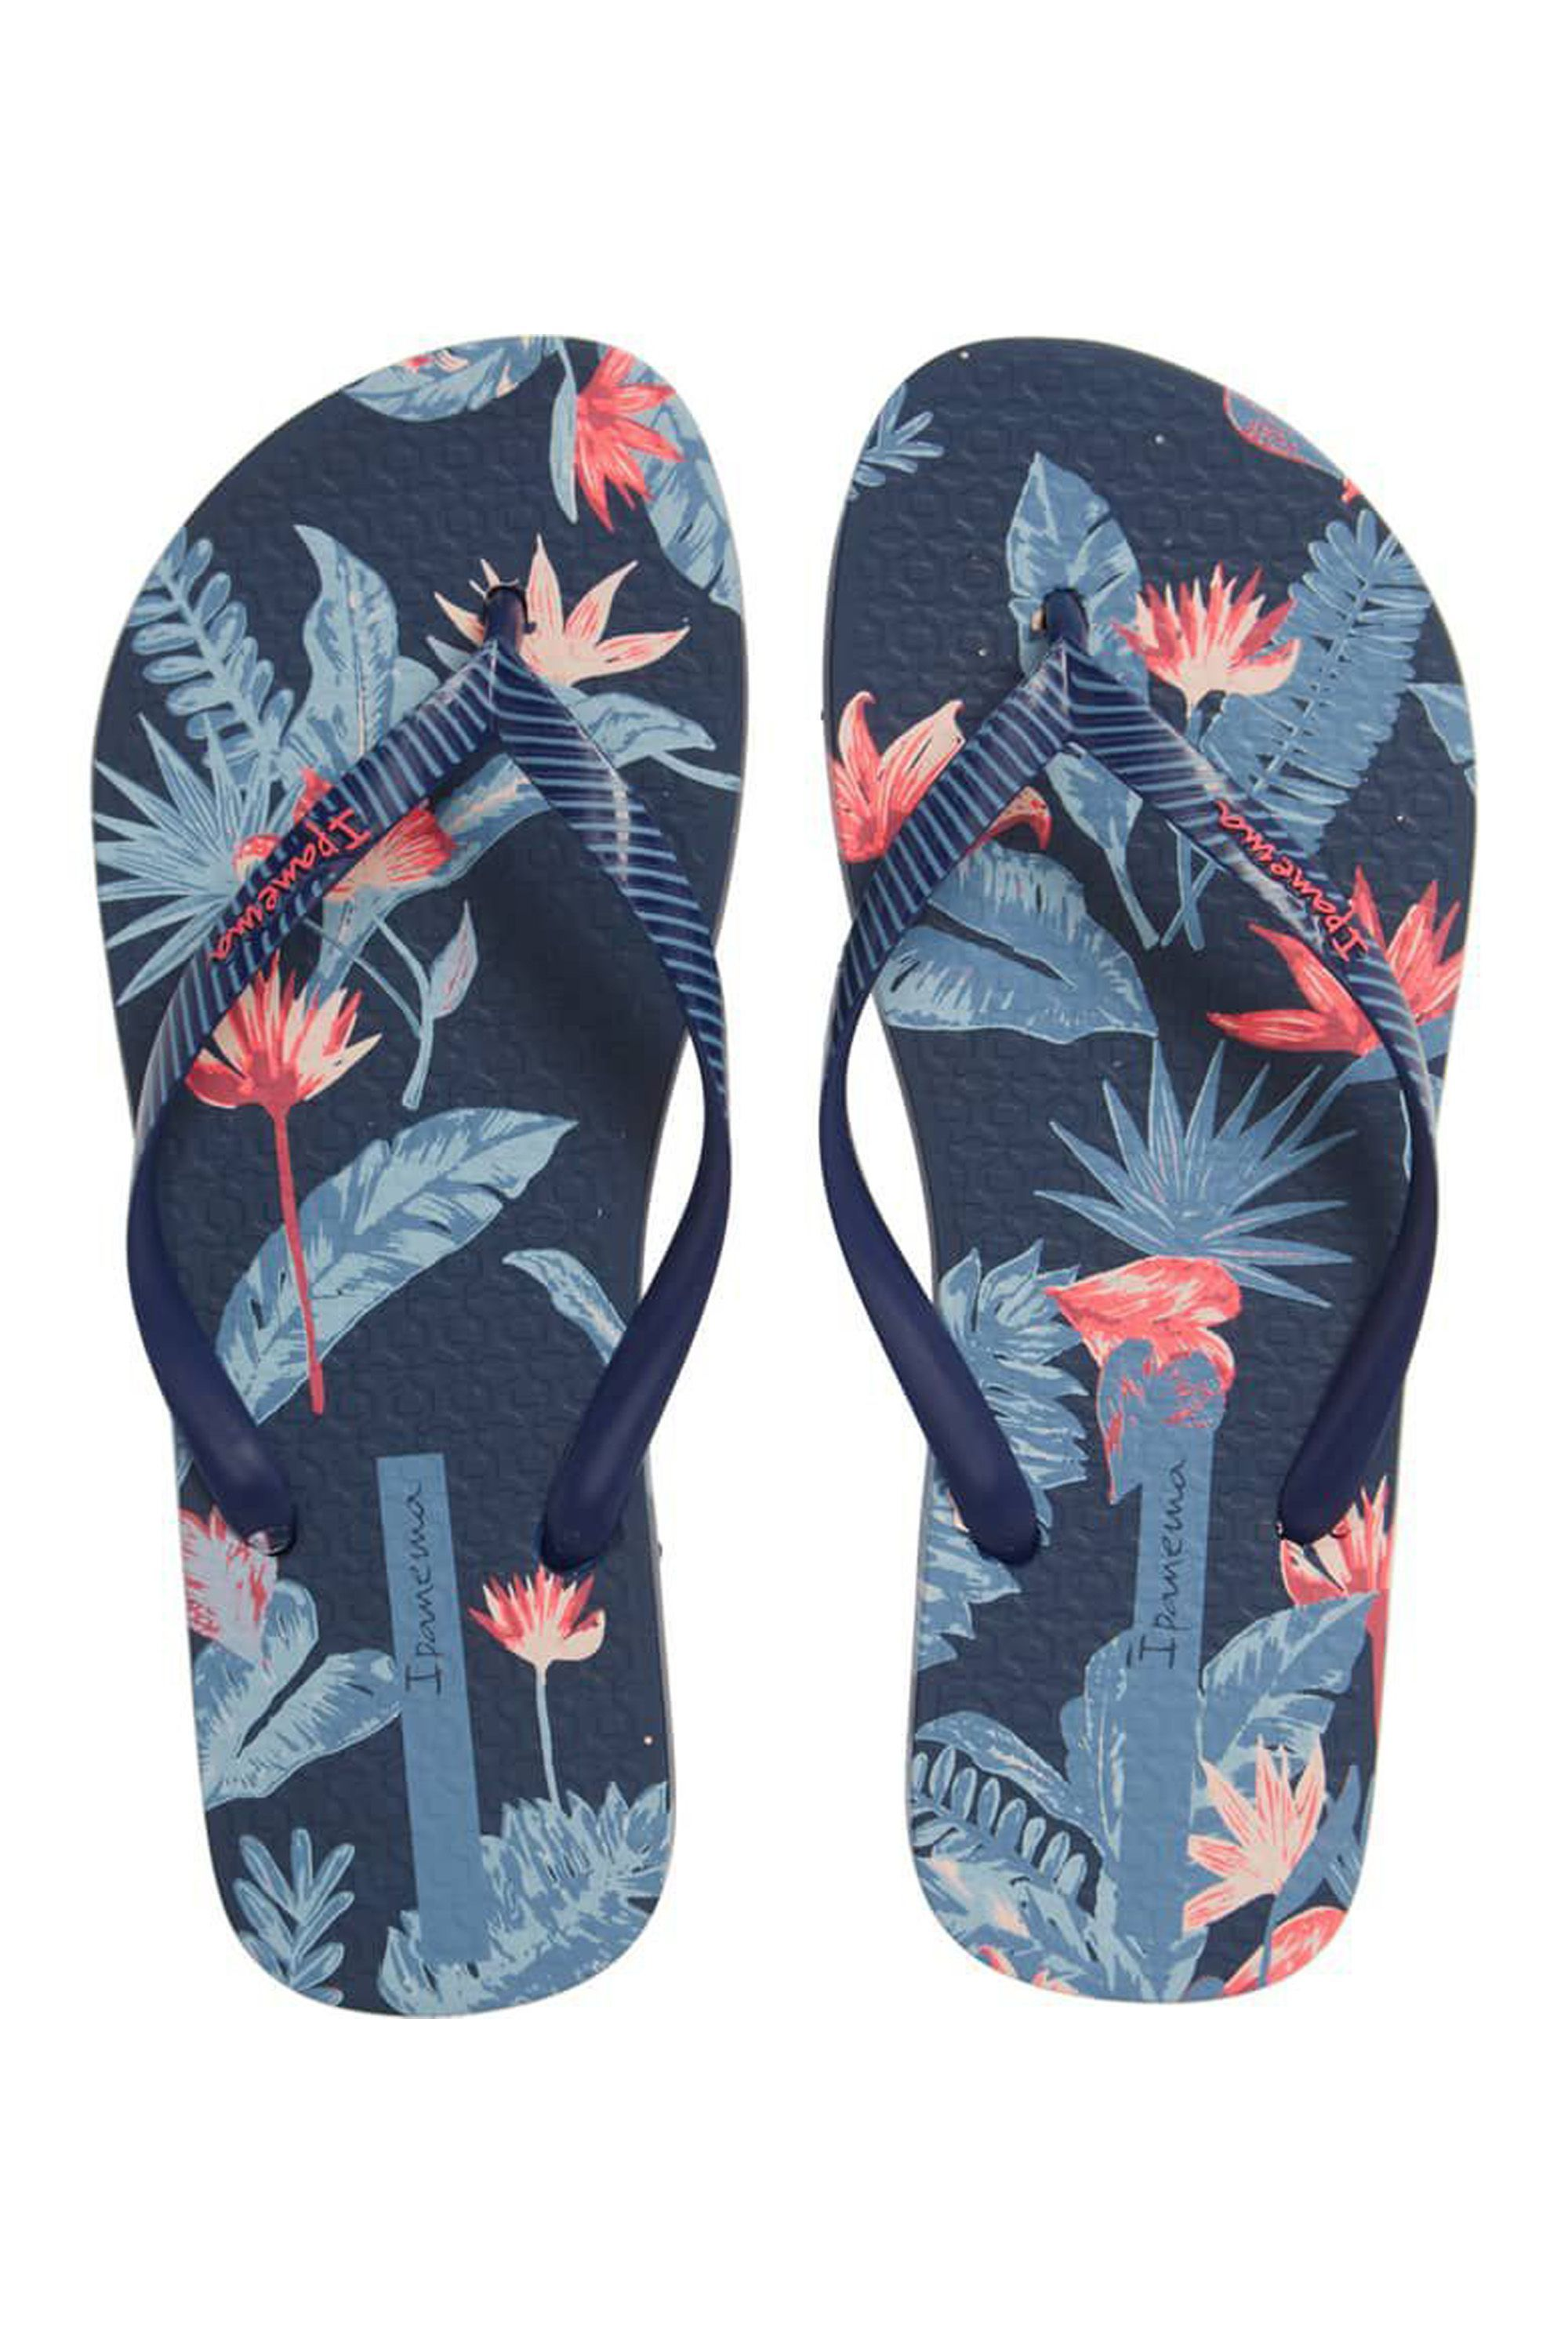 270d24e603 16 Best Flip Flop Brands — Cute Flip Flops for 2019